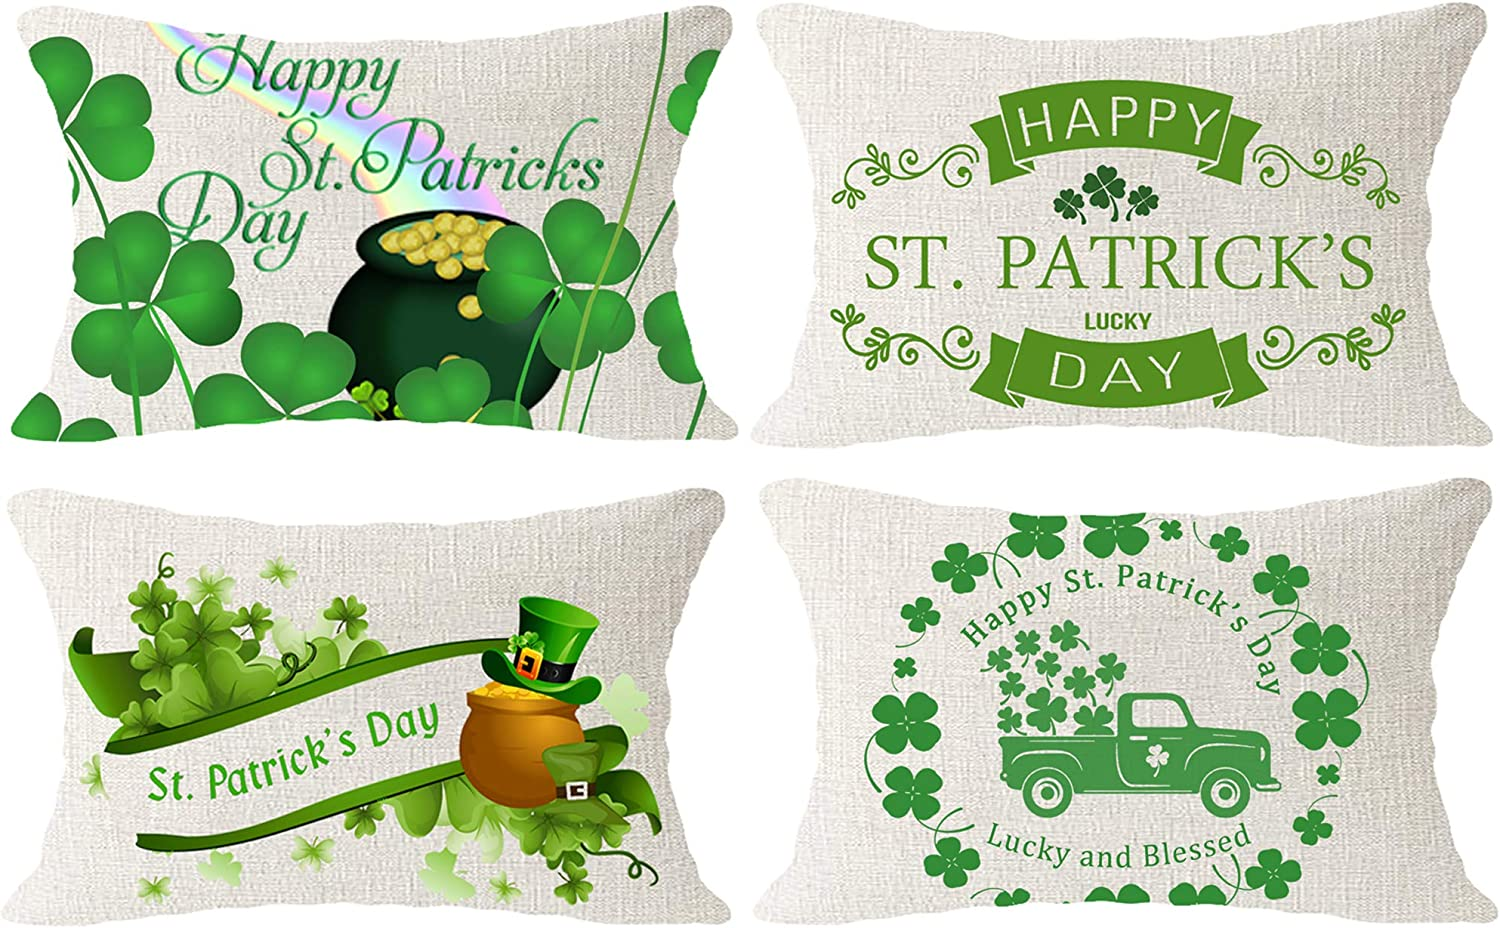 Hysunland St Patricks Day Spring Pillow Cases Covers 12x20 Inch Pack of 4 Shamrock Clovers Rainbow Pot of Gold Decor Beige Burlap Farmhouse Lumbar Pillow Shams Pillowcases with Zip for Home Outdoor